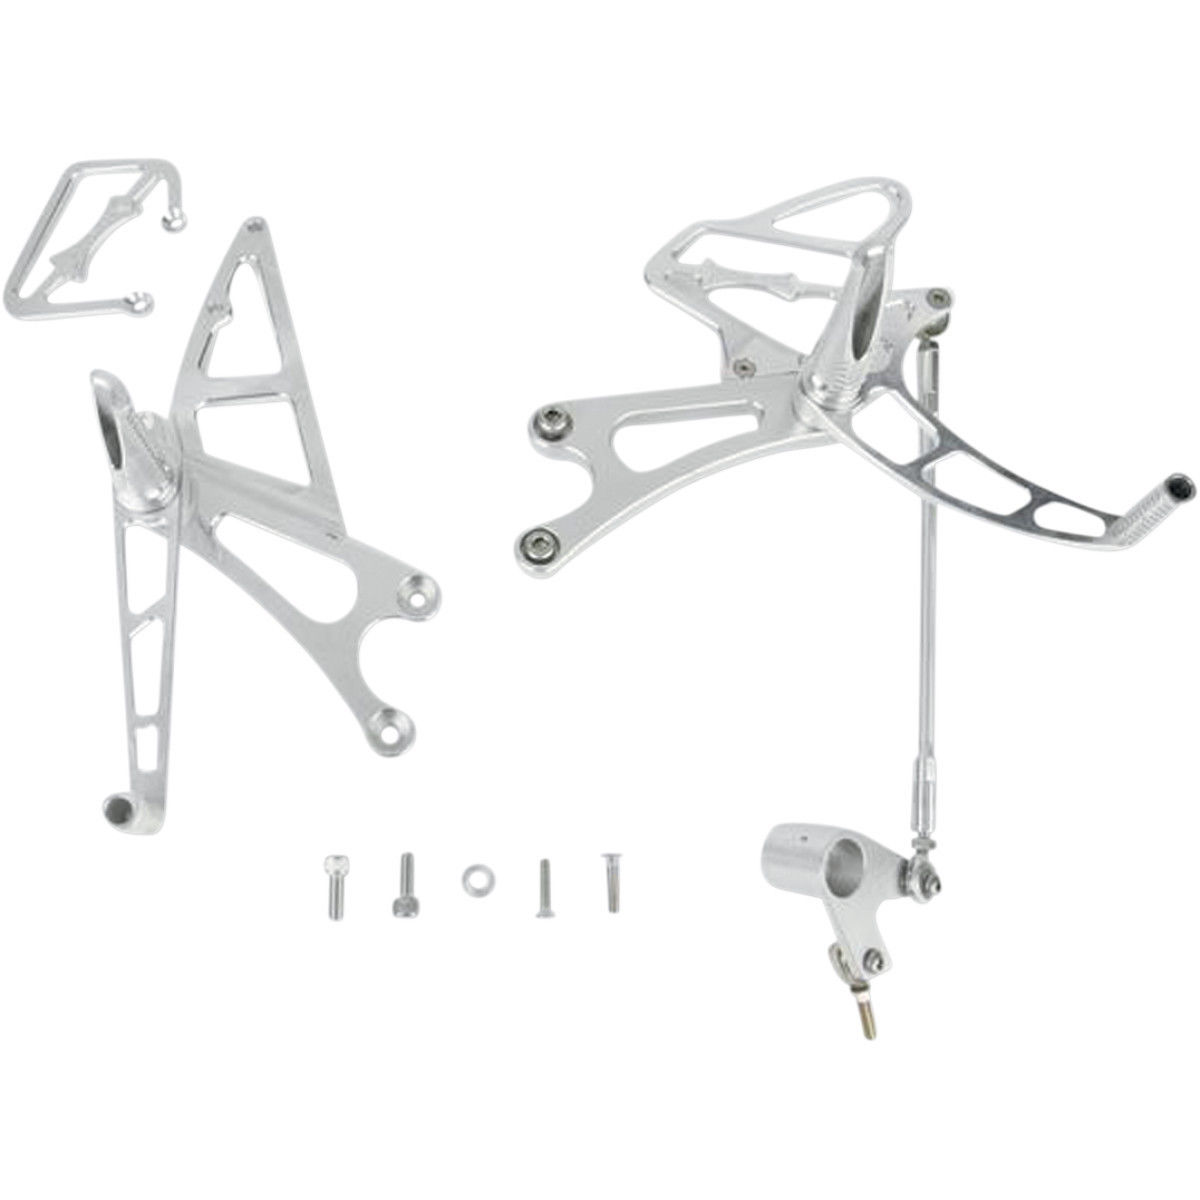 Rear Sets RS-390 Kit/Parts